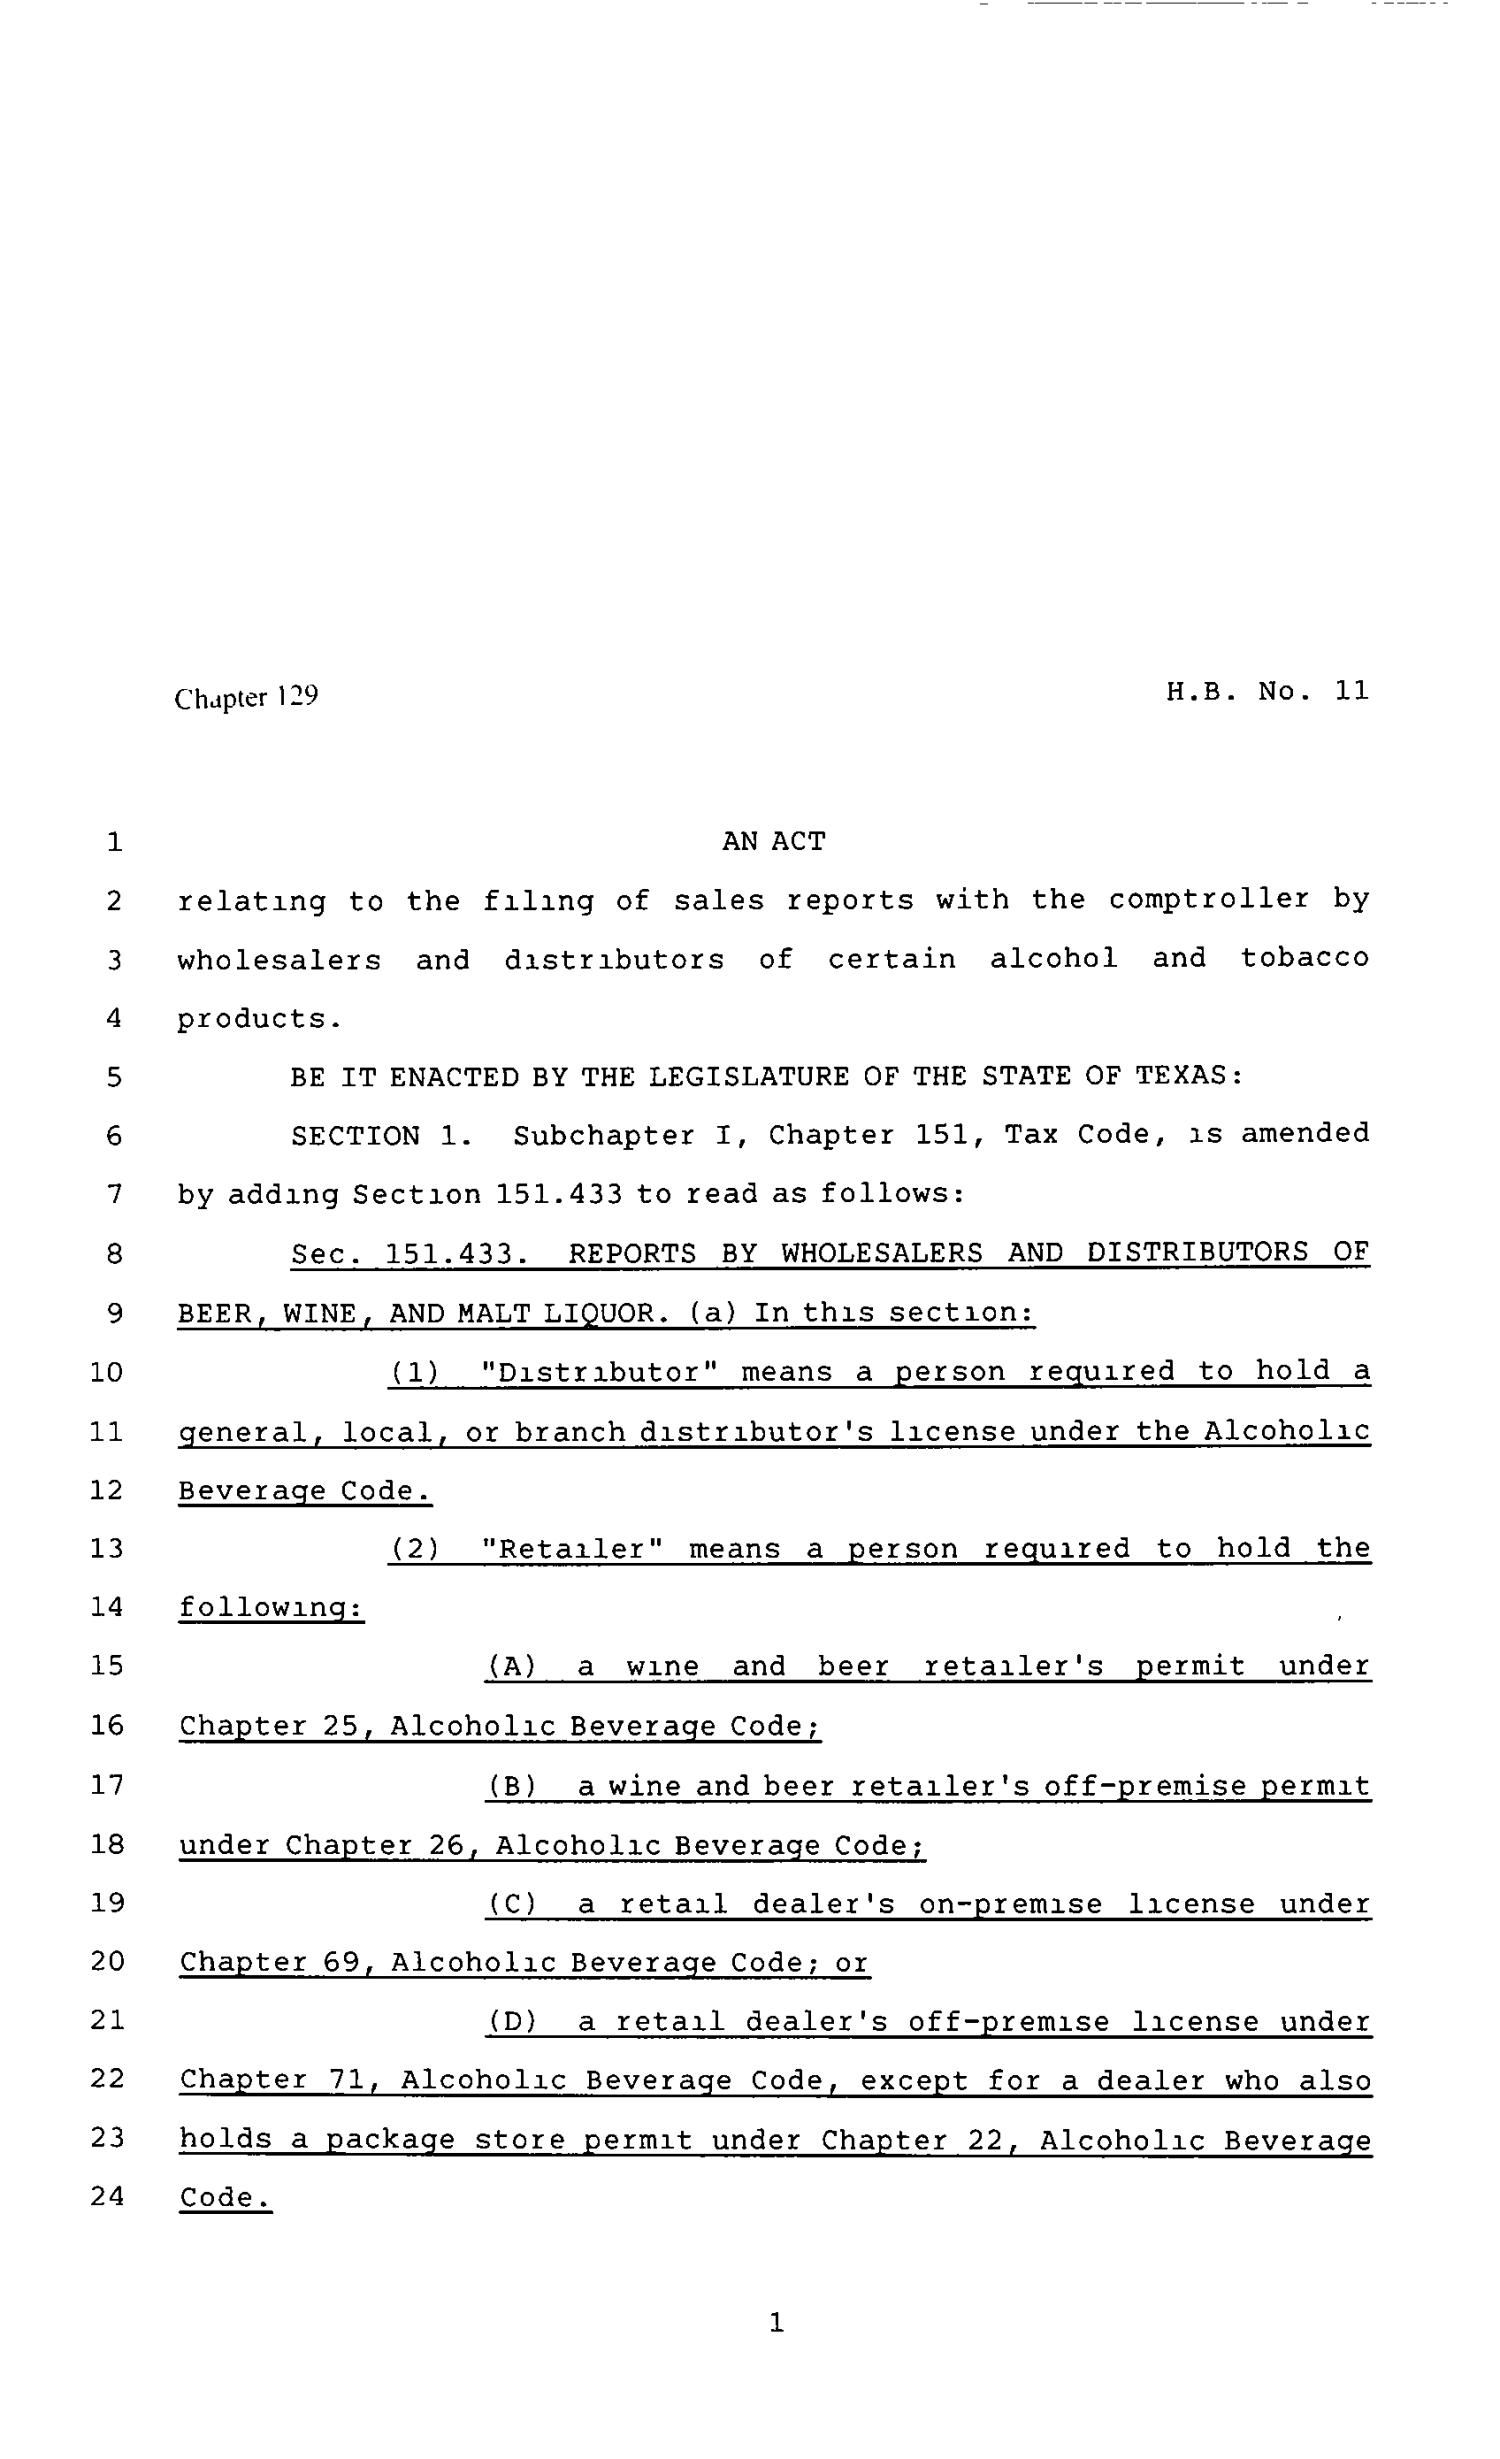 80th Texas Legislature, Regular Session, House Bill 11, Chapter 129                                                                                                      [Sequence #]: 1 of 7